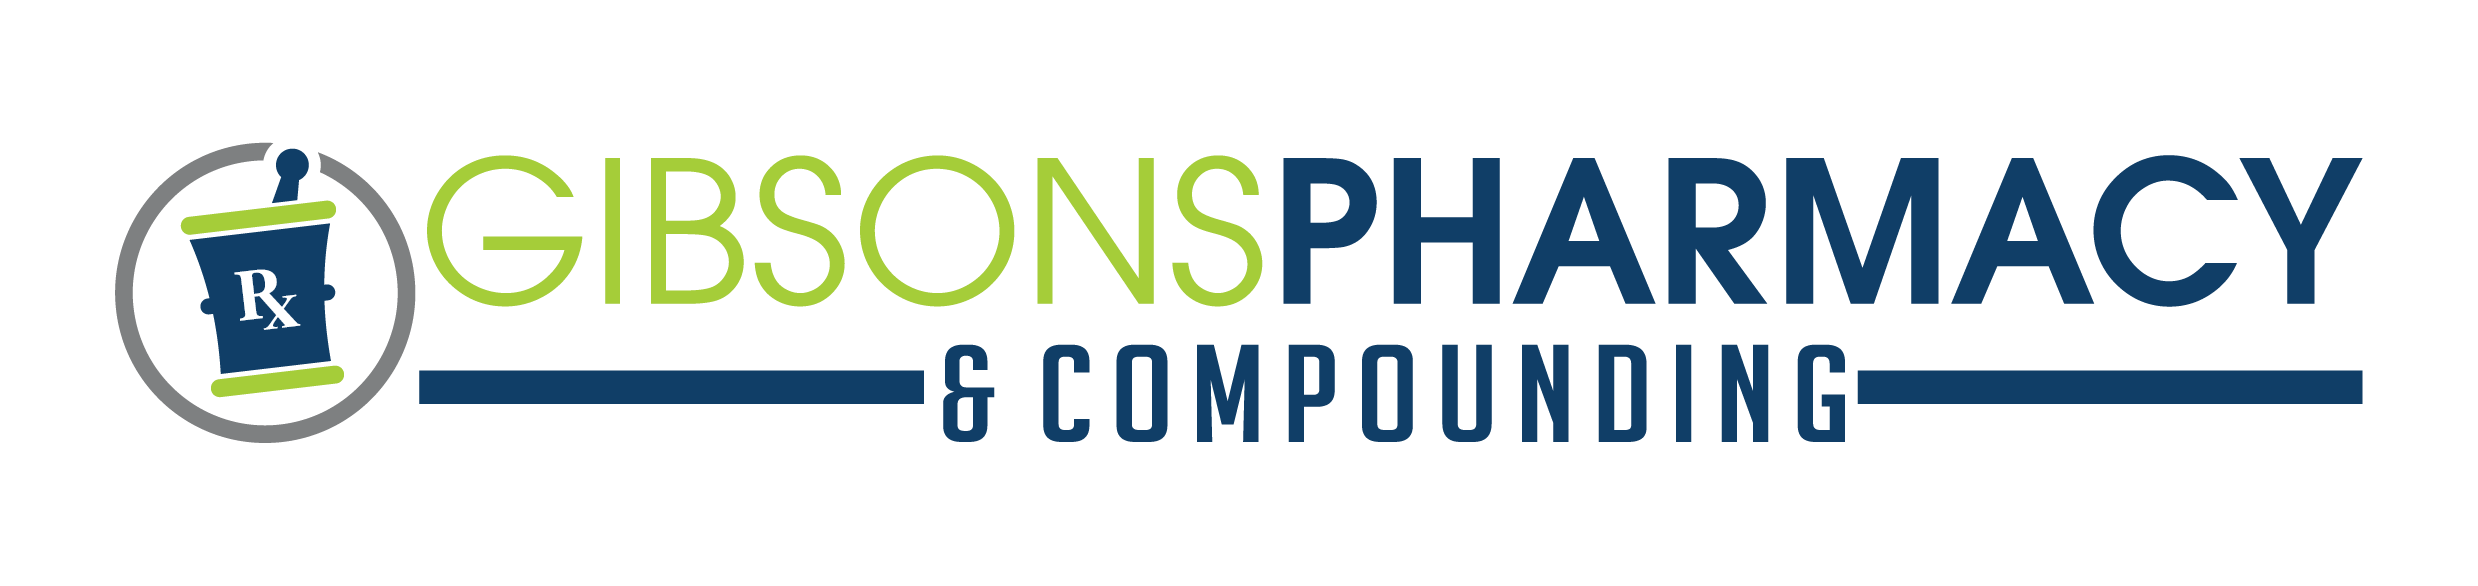 RI - Gibson's Pharmacy & Compounding